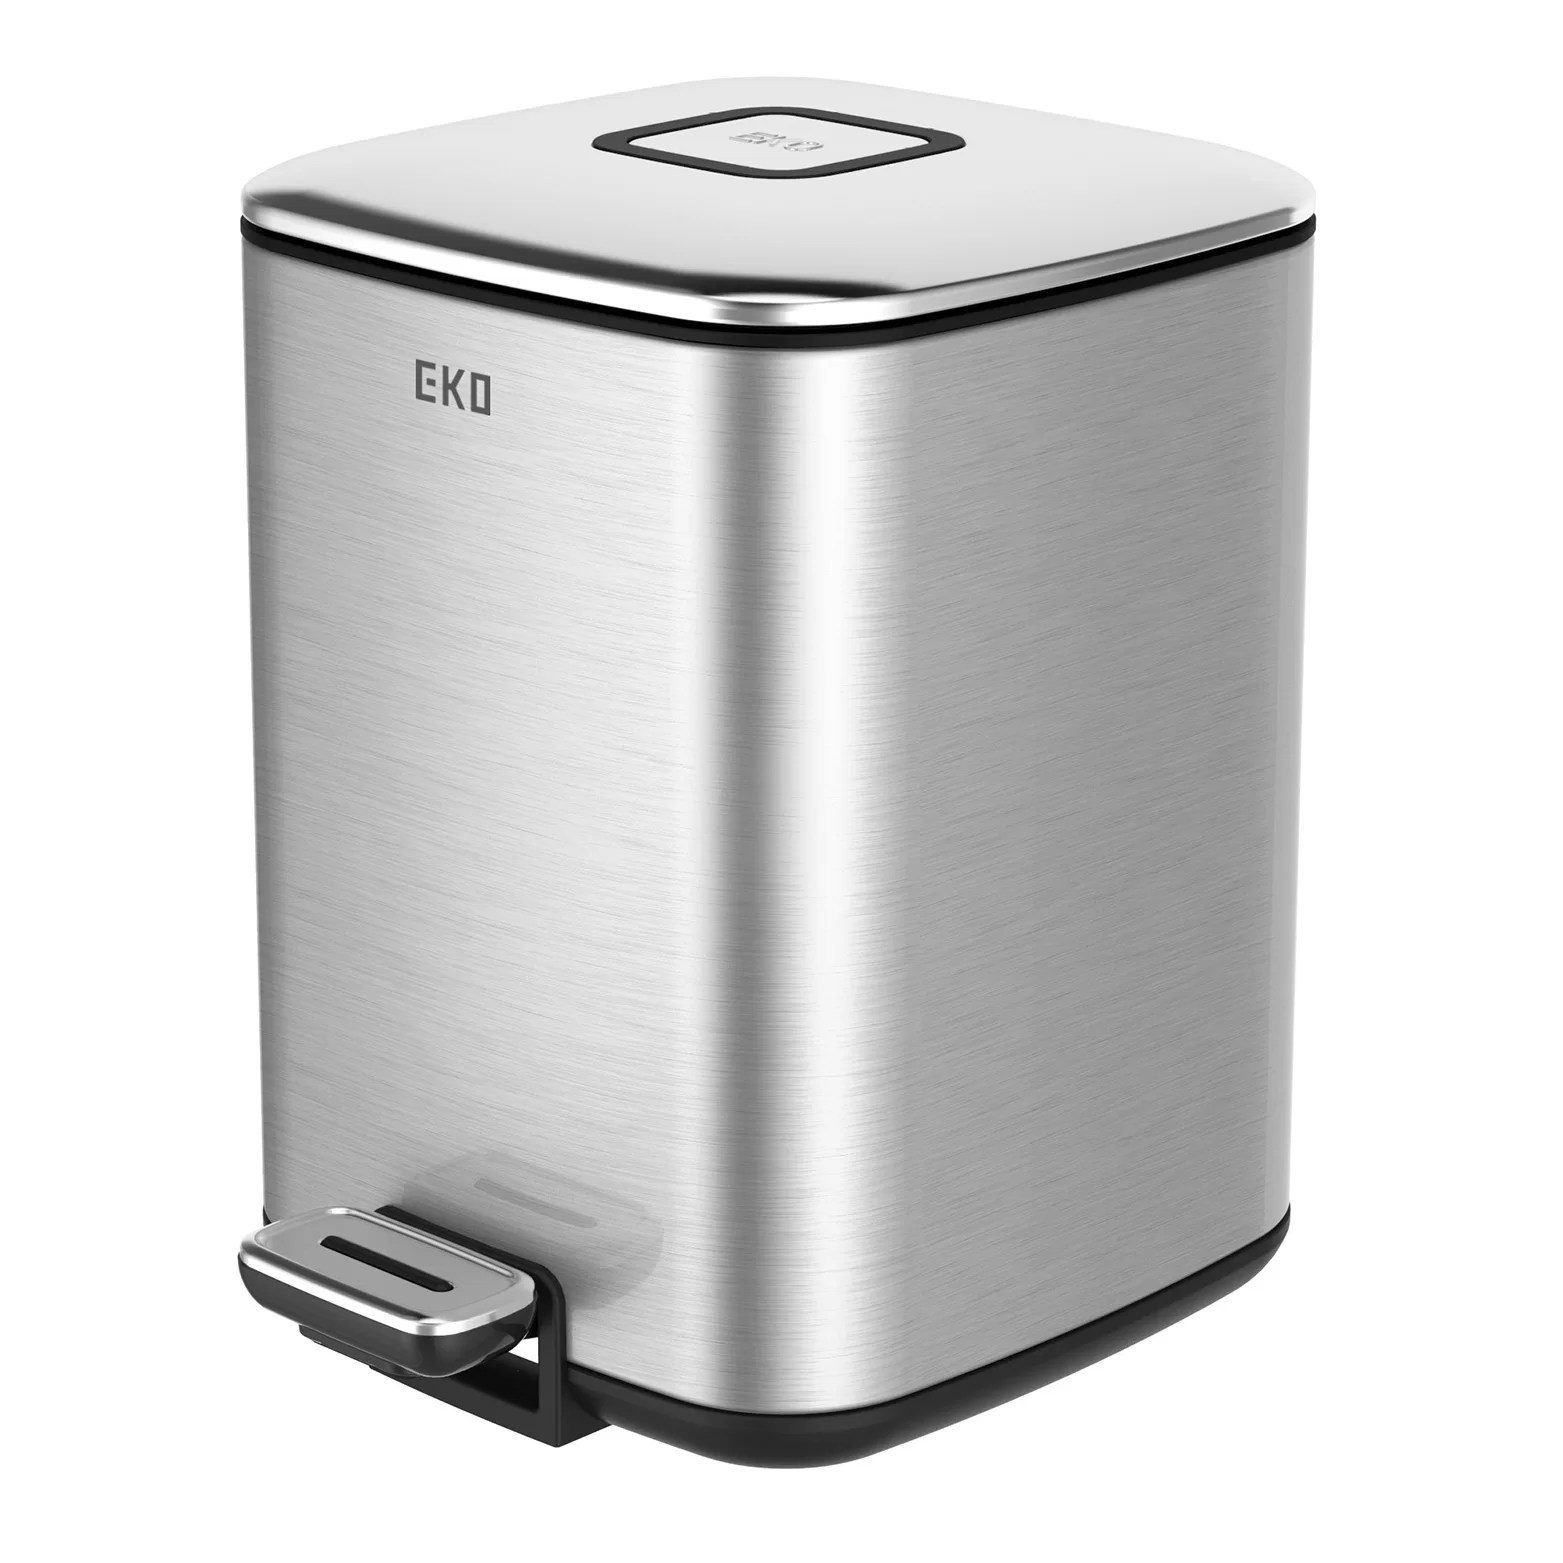 Stainless Steel Tall Kitchen Garbage Can Eko 1 5 Gal Square Metal Trash Can And Reviews Wayfair